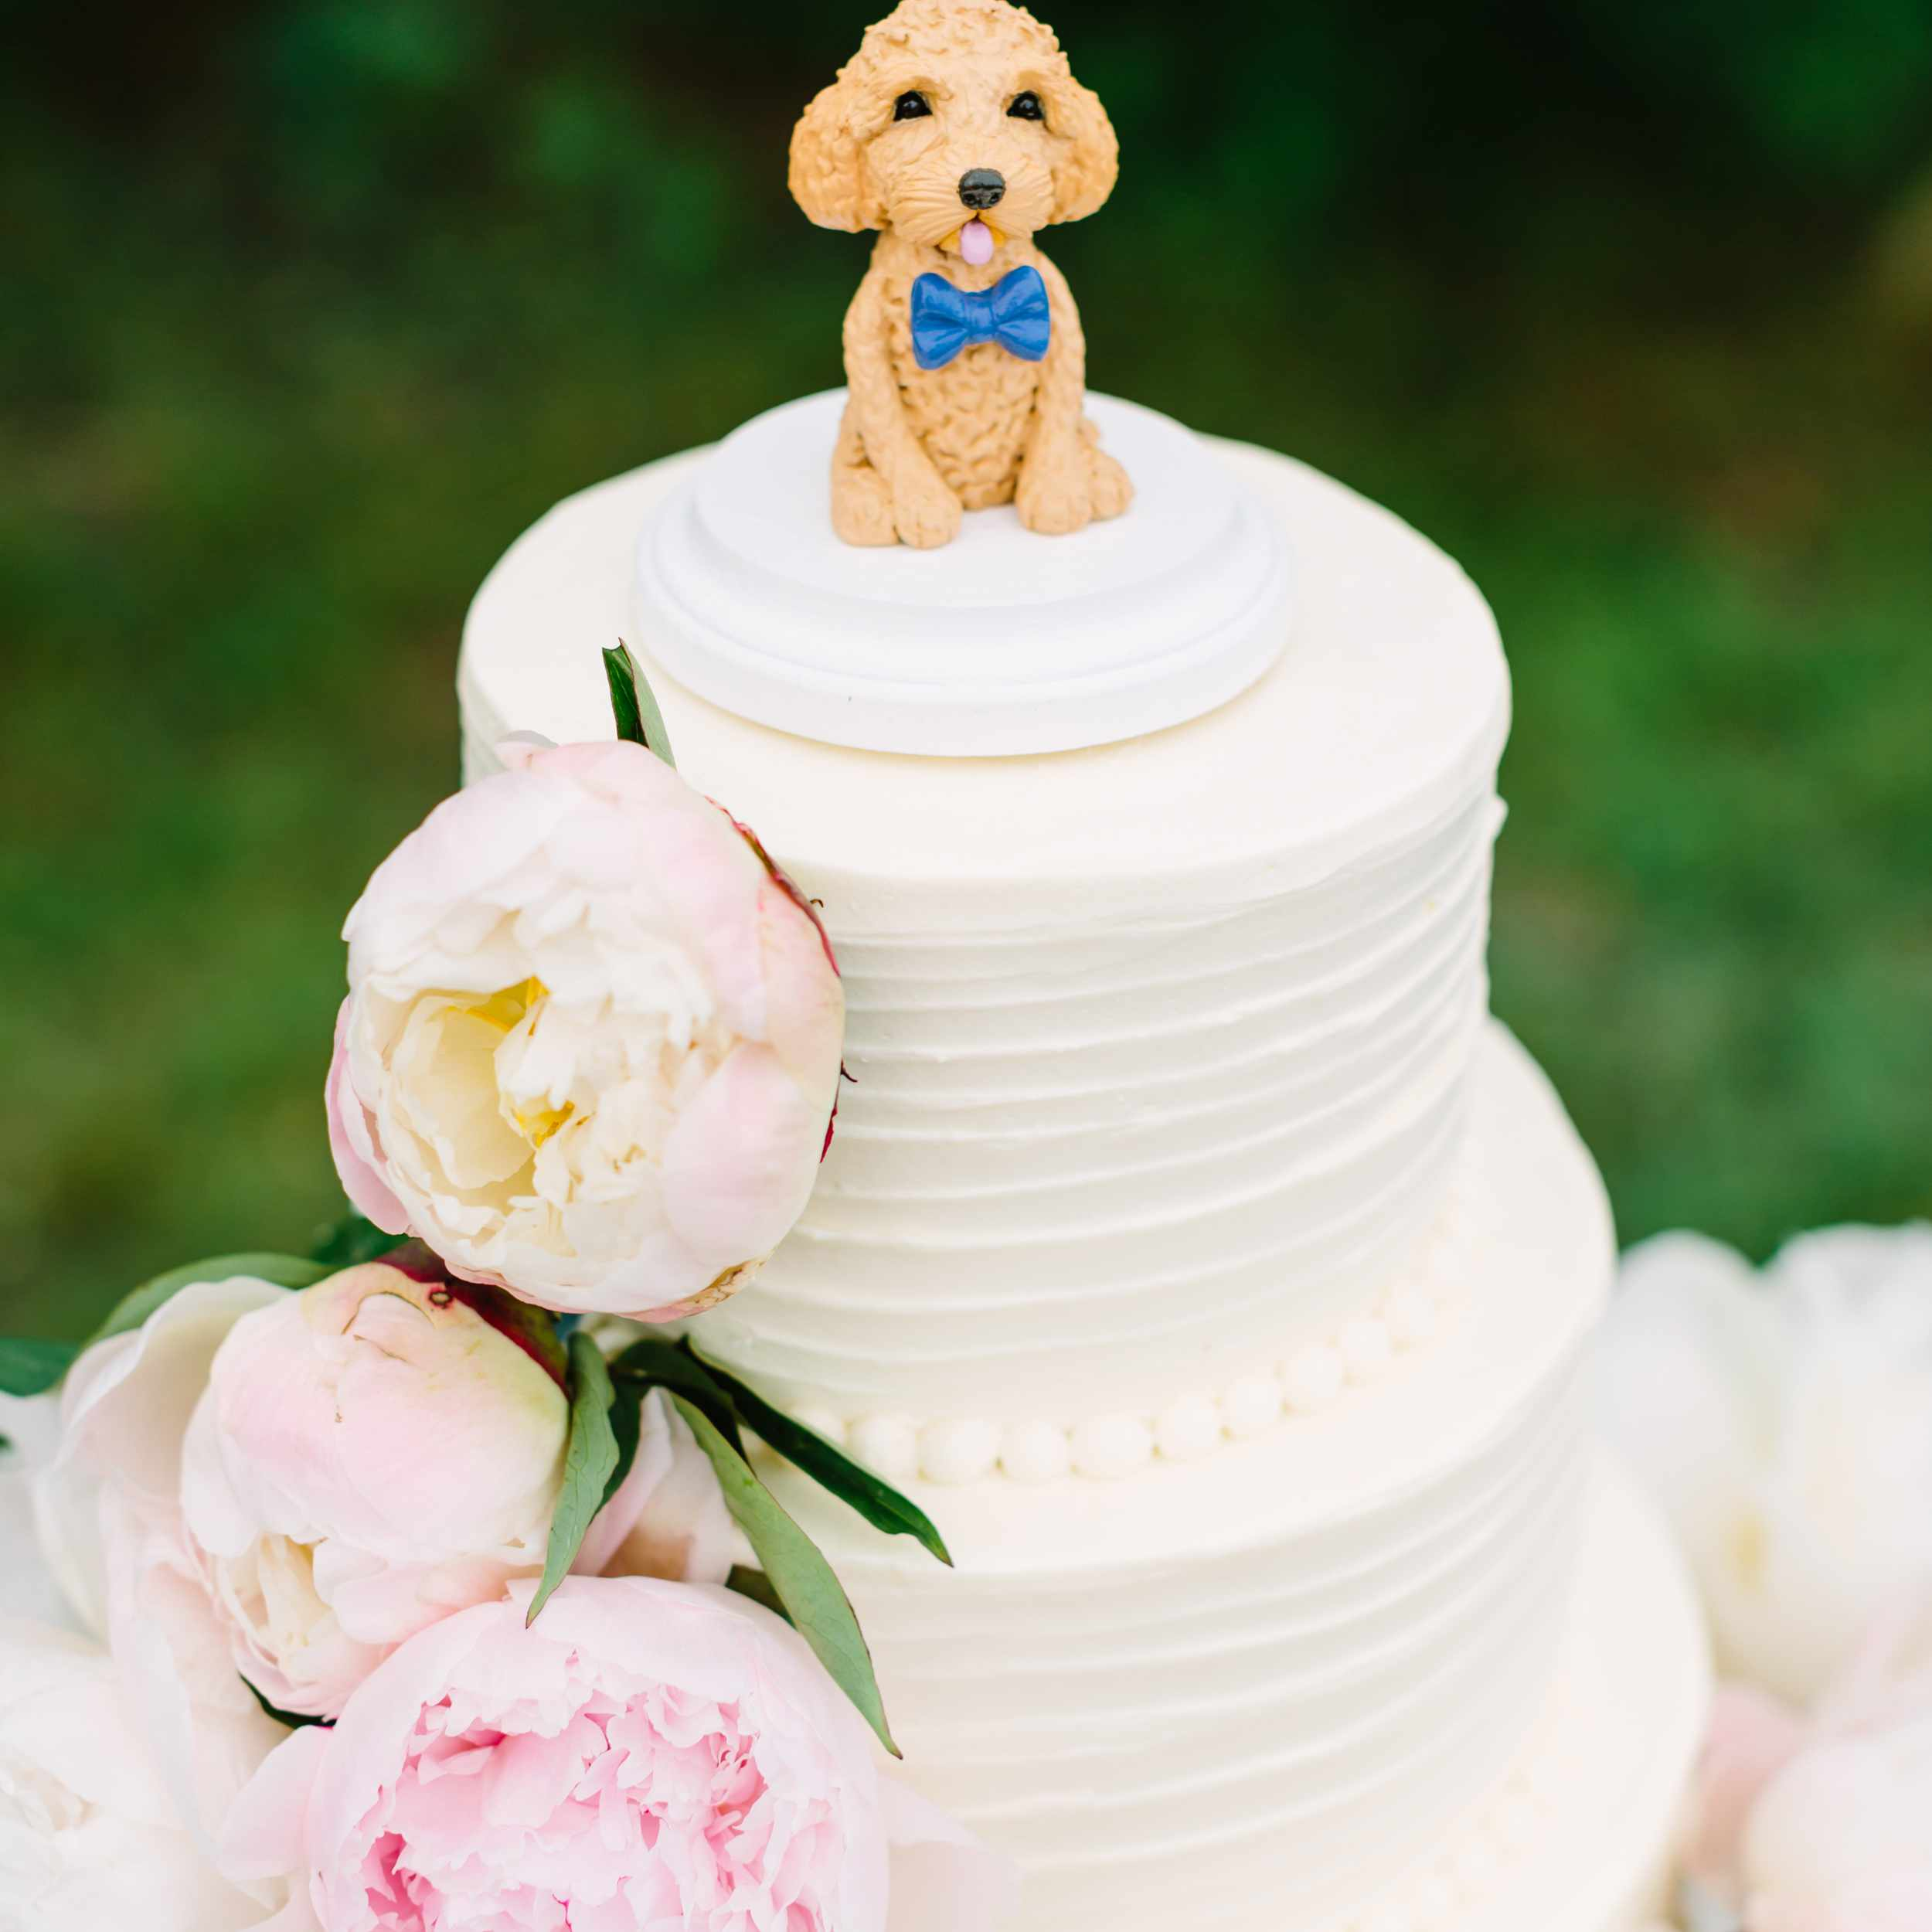 50 Too-Cute Ways to Include Your Pet in Your Wedding